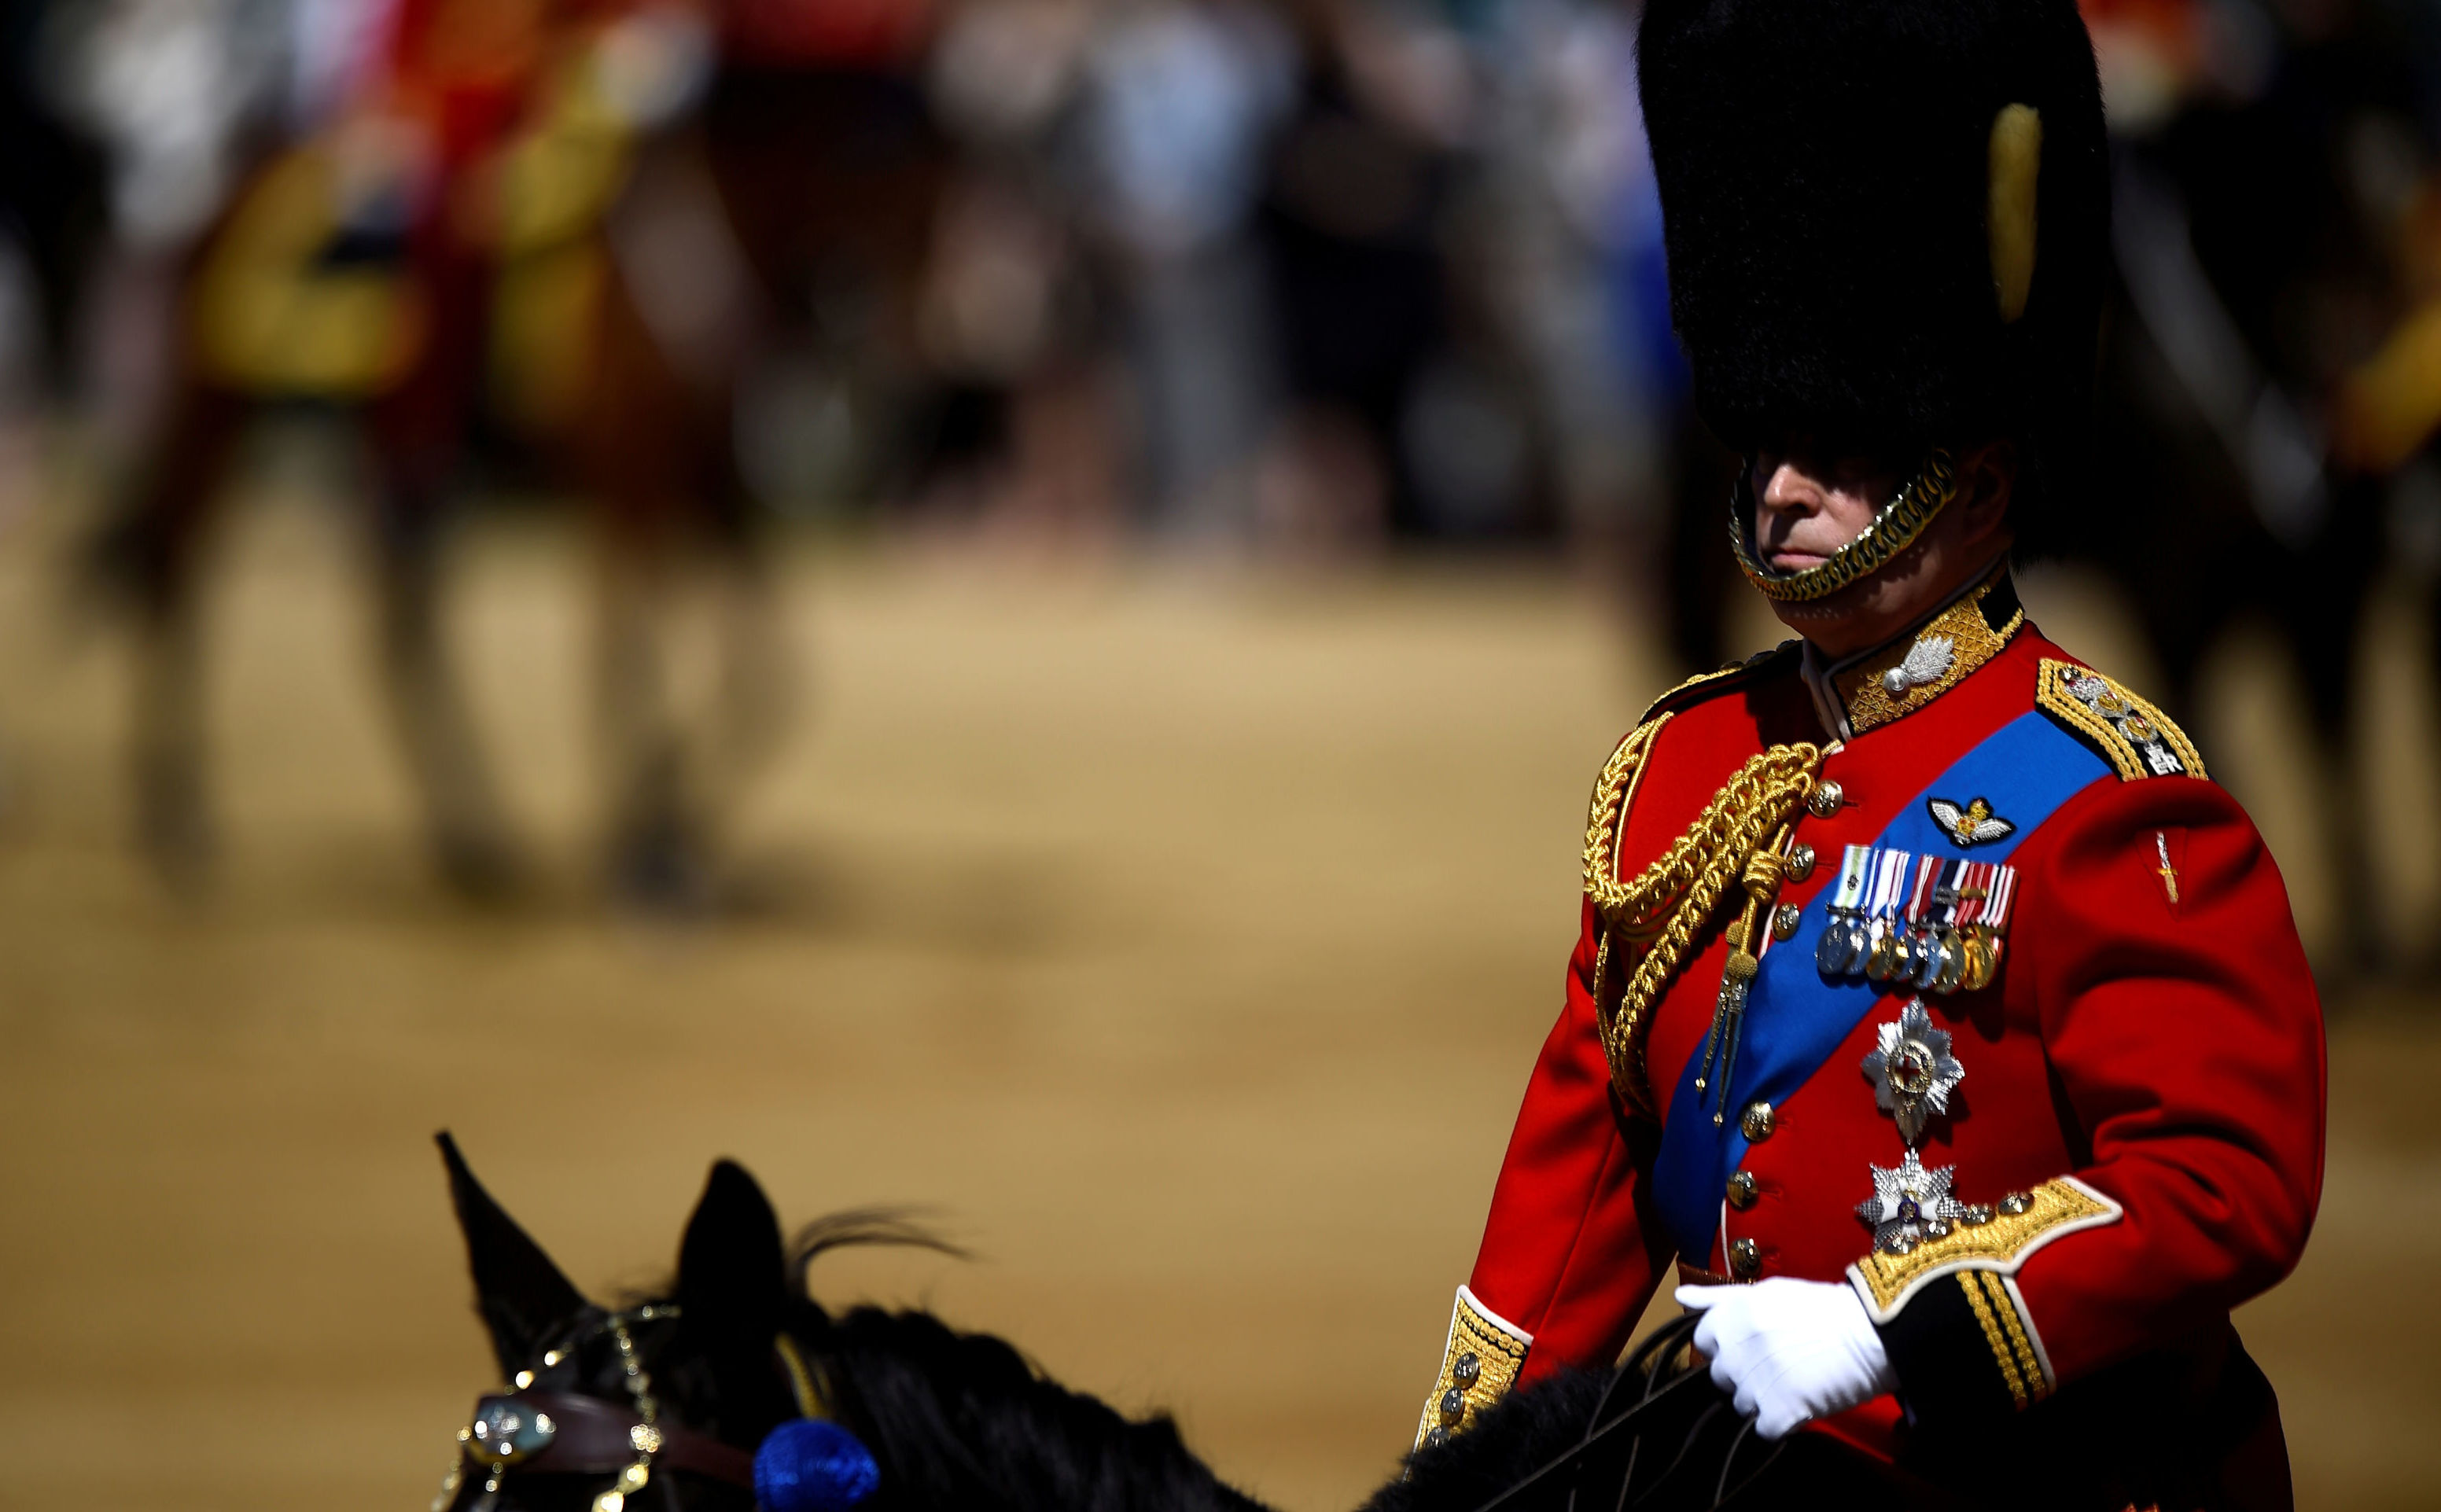 Britain's Prince Andrew, Duke of York, takes part in the Colonel's Review ahead of the Queen's birthday parade next week, on Horseguards Parade in London, Britain, June 1, 2019